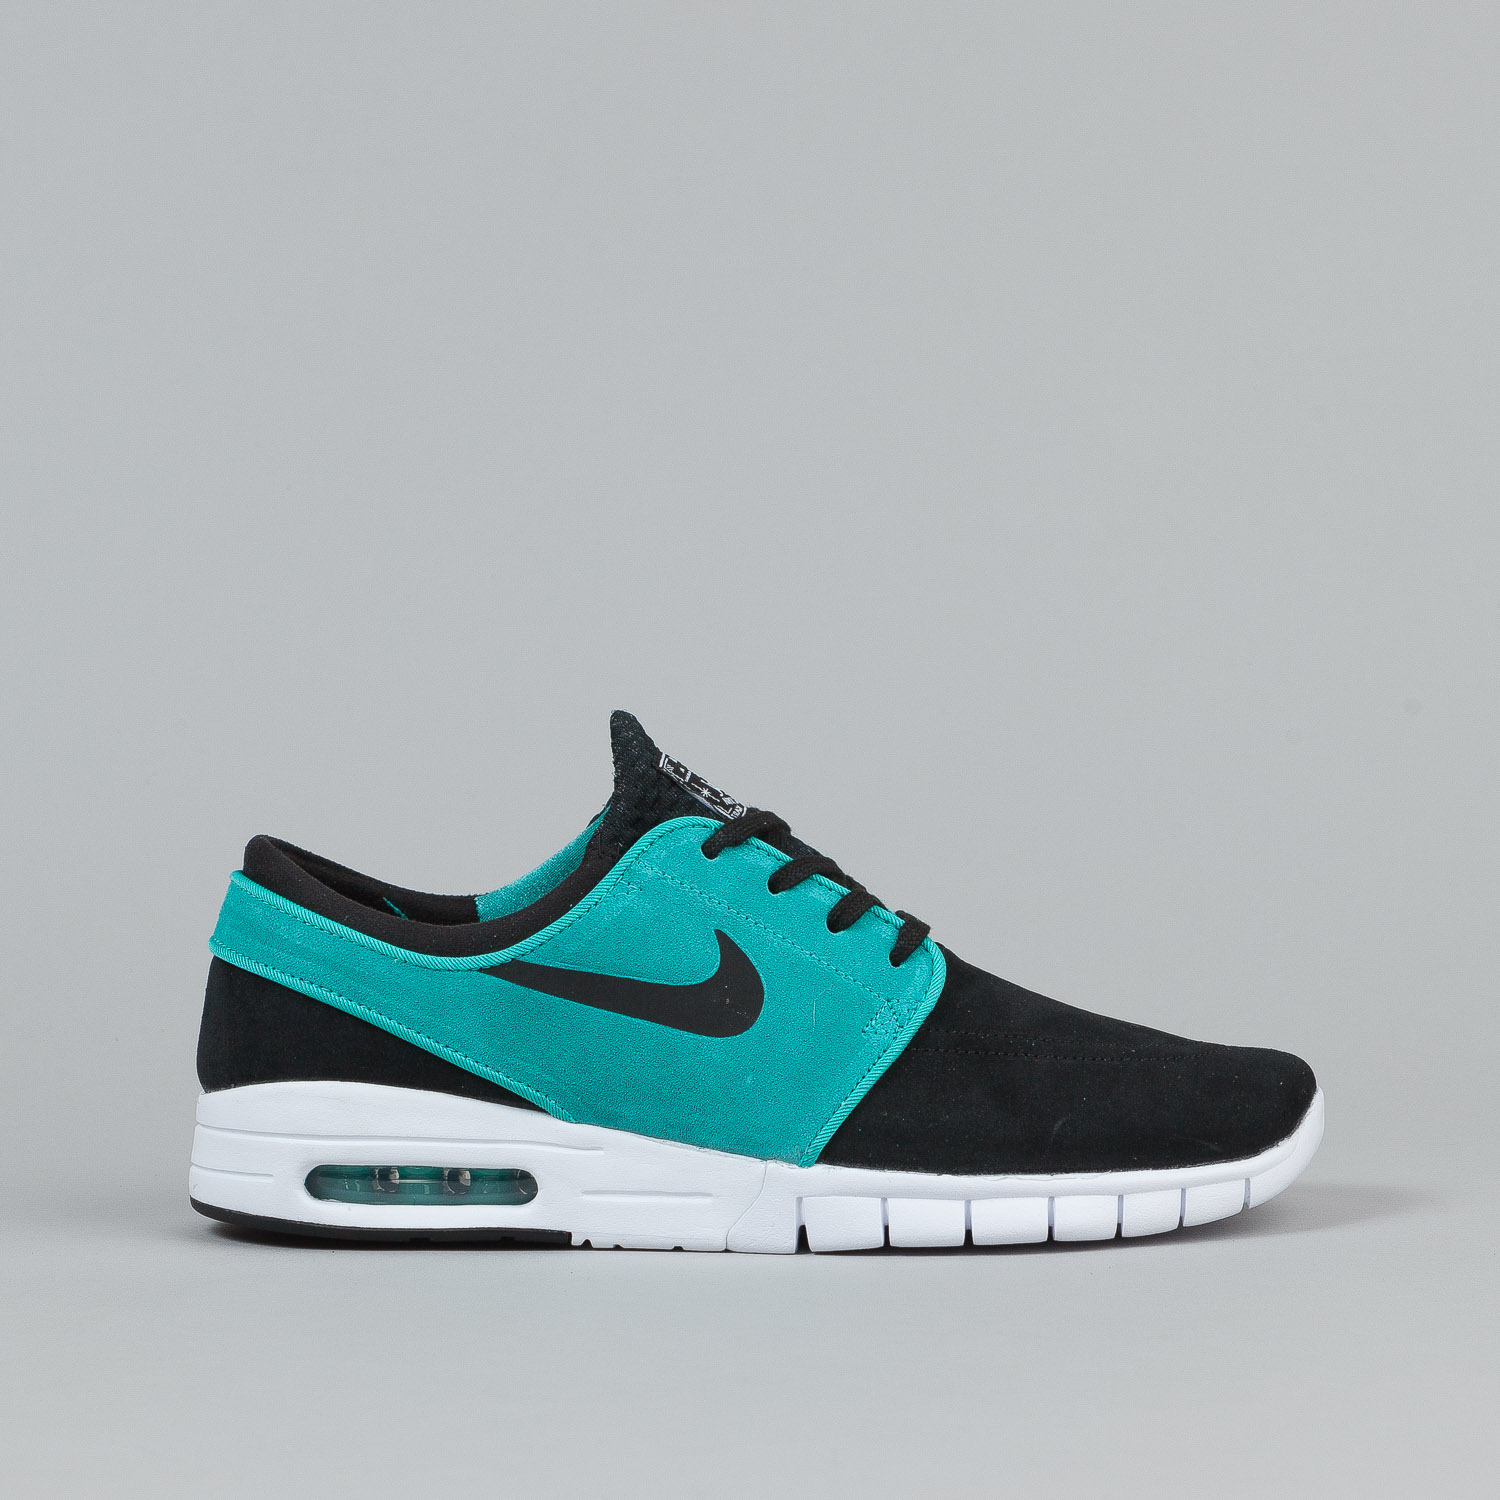 Nike Sb Stefan Janoski Max Shoes Review